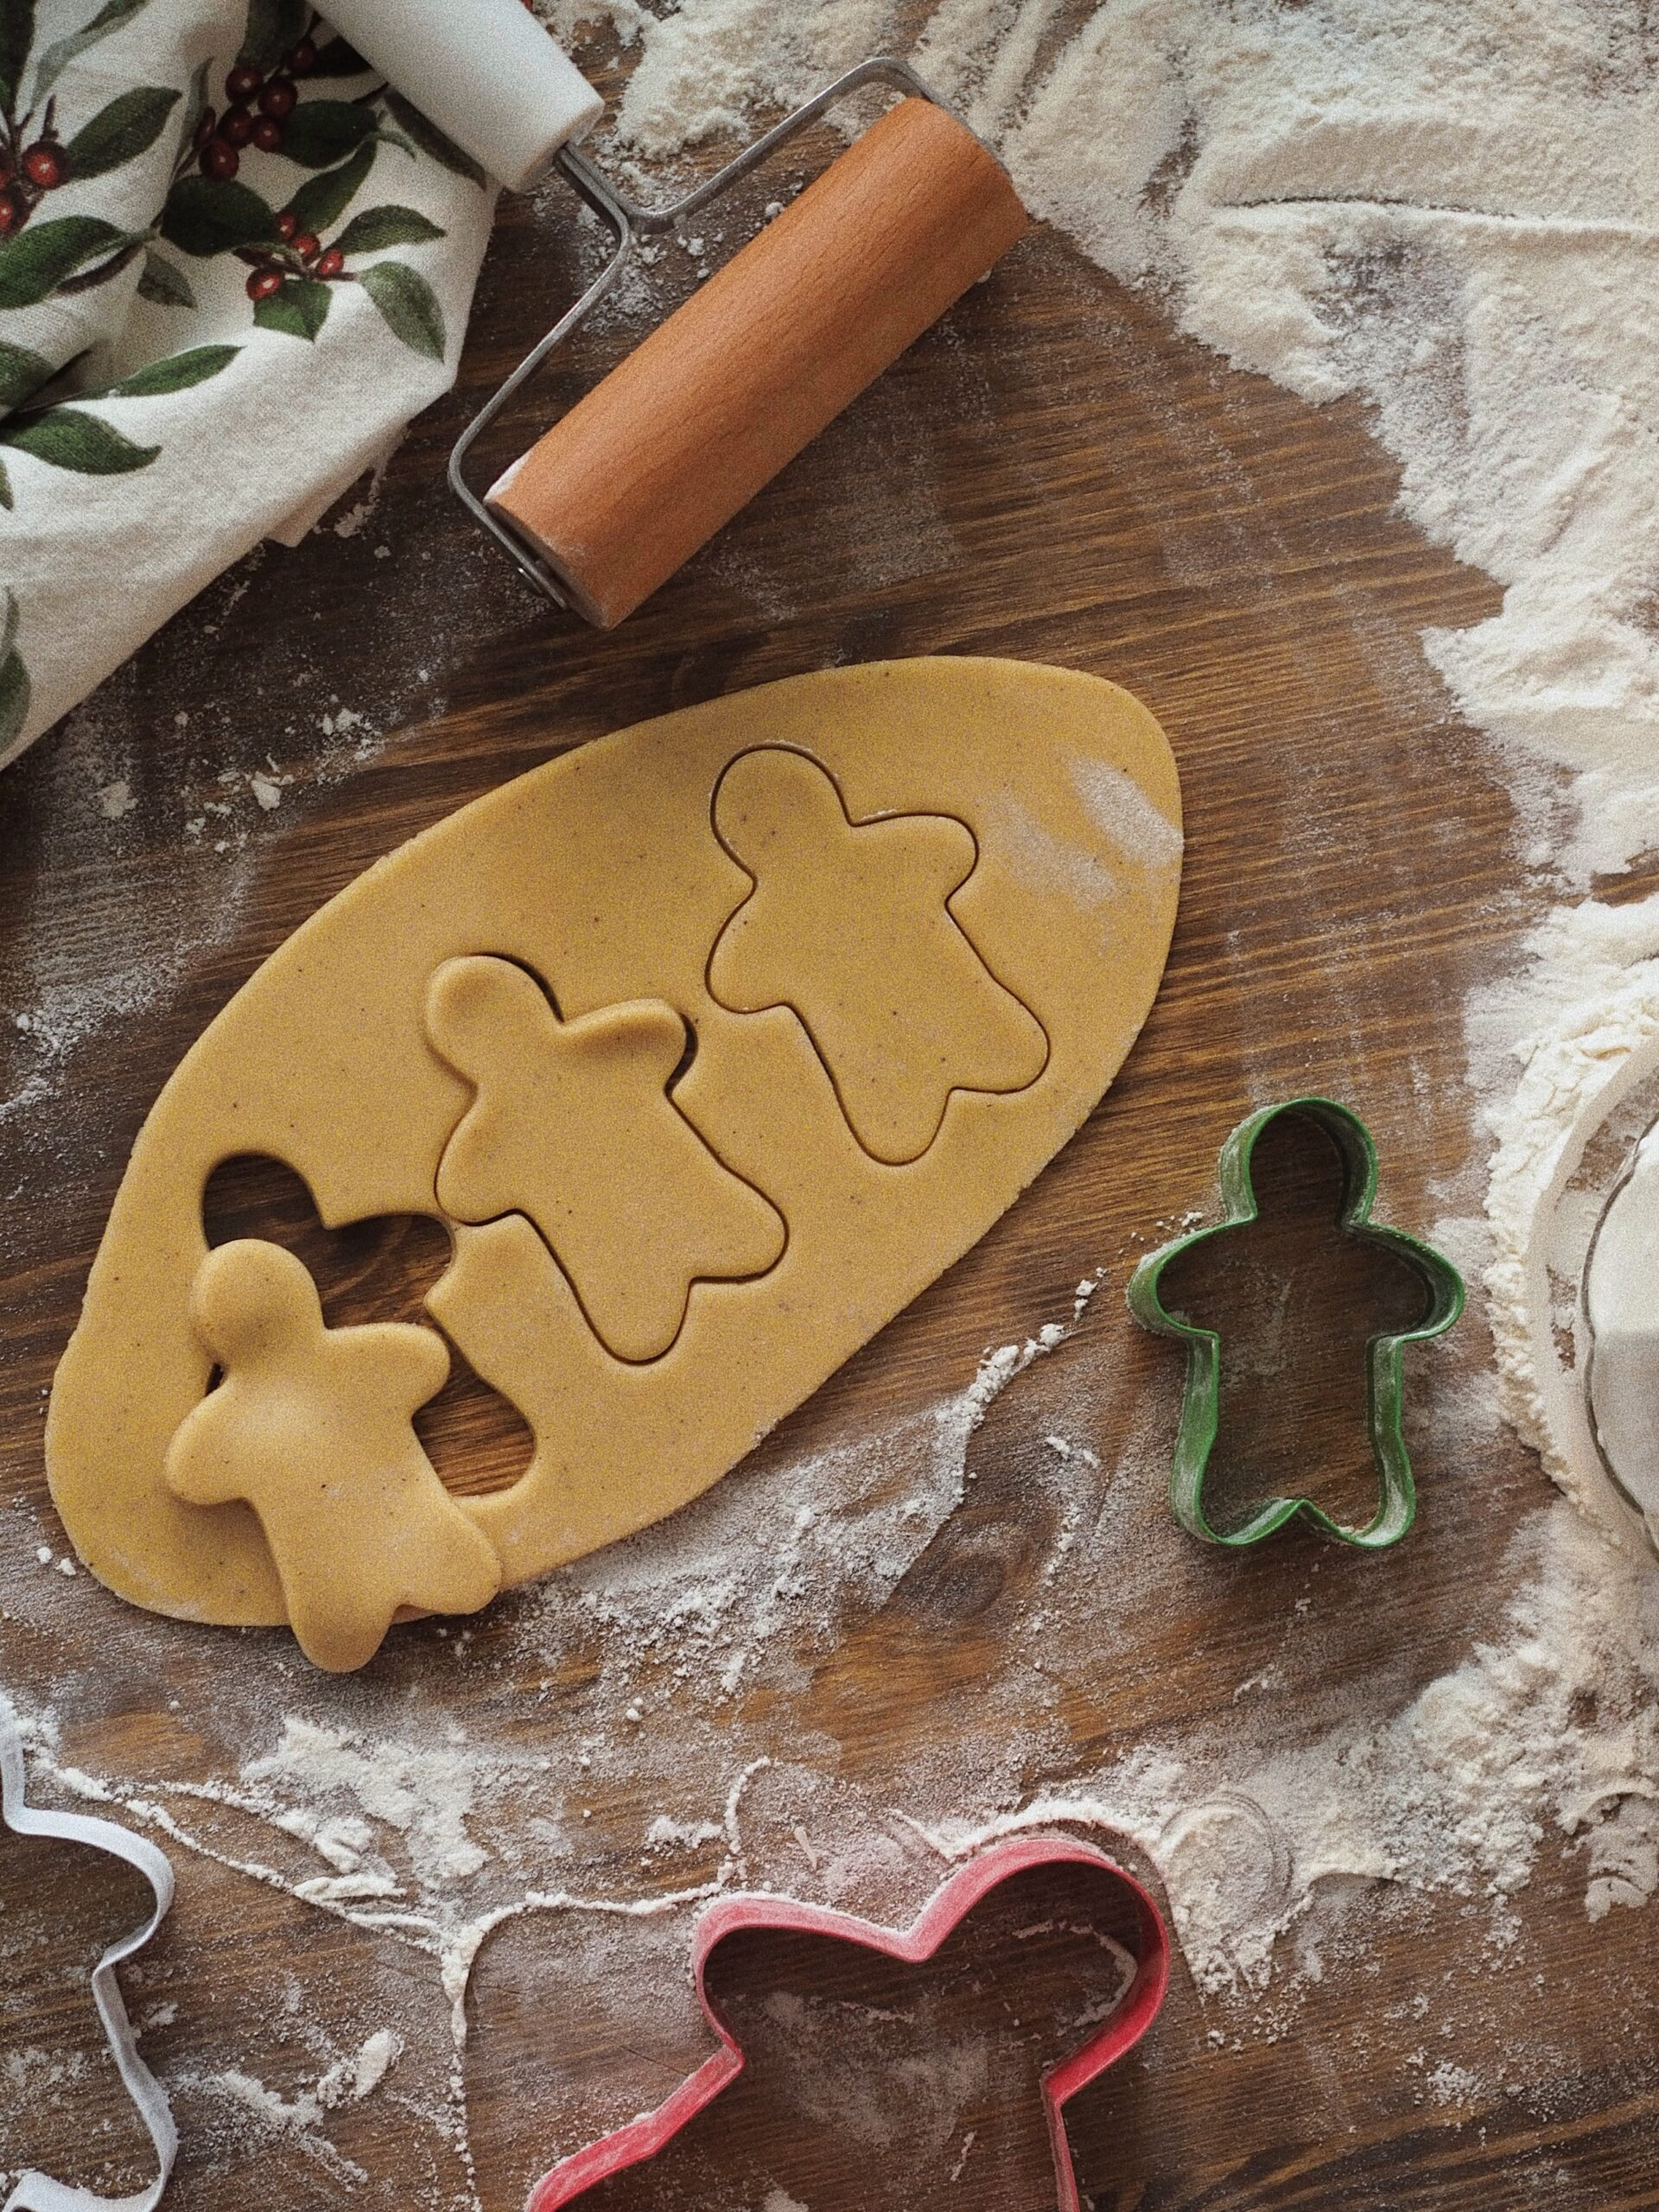 Gingerbread men being cut out of dough with cookie cutters